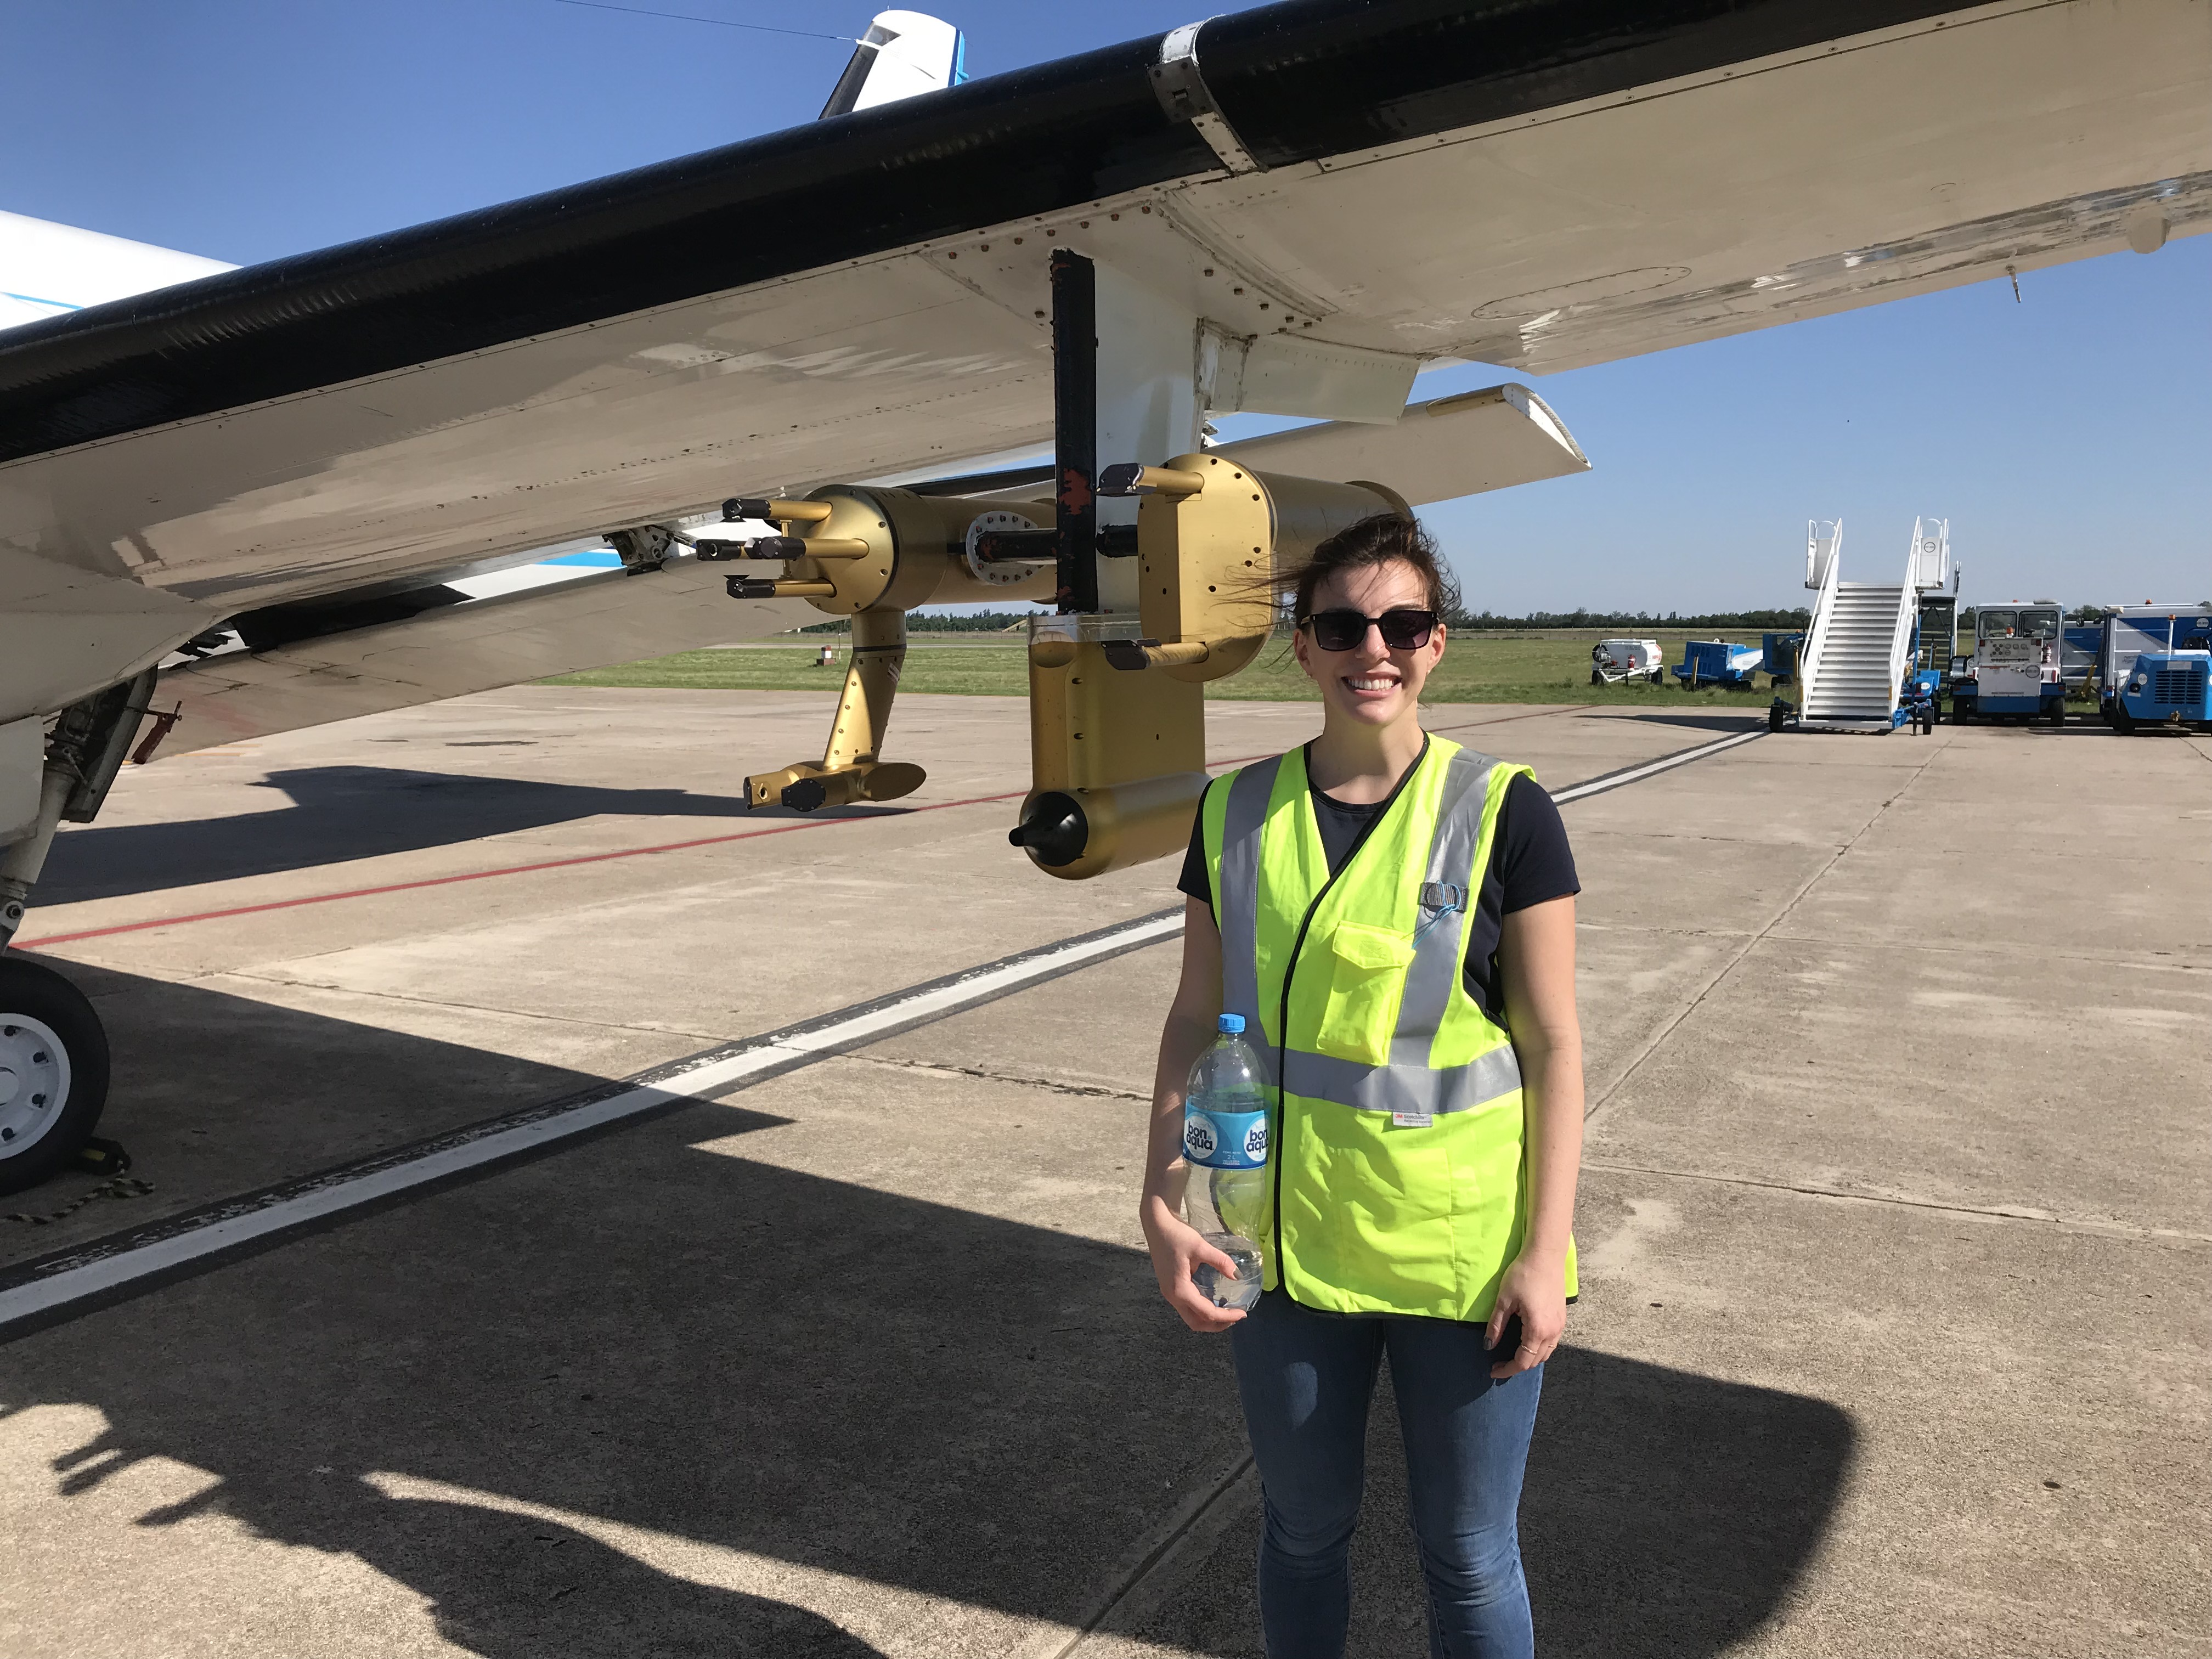 Lexie Goldberger stands next to aircraft